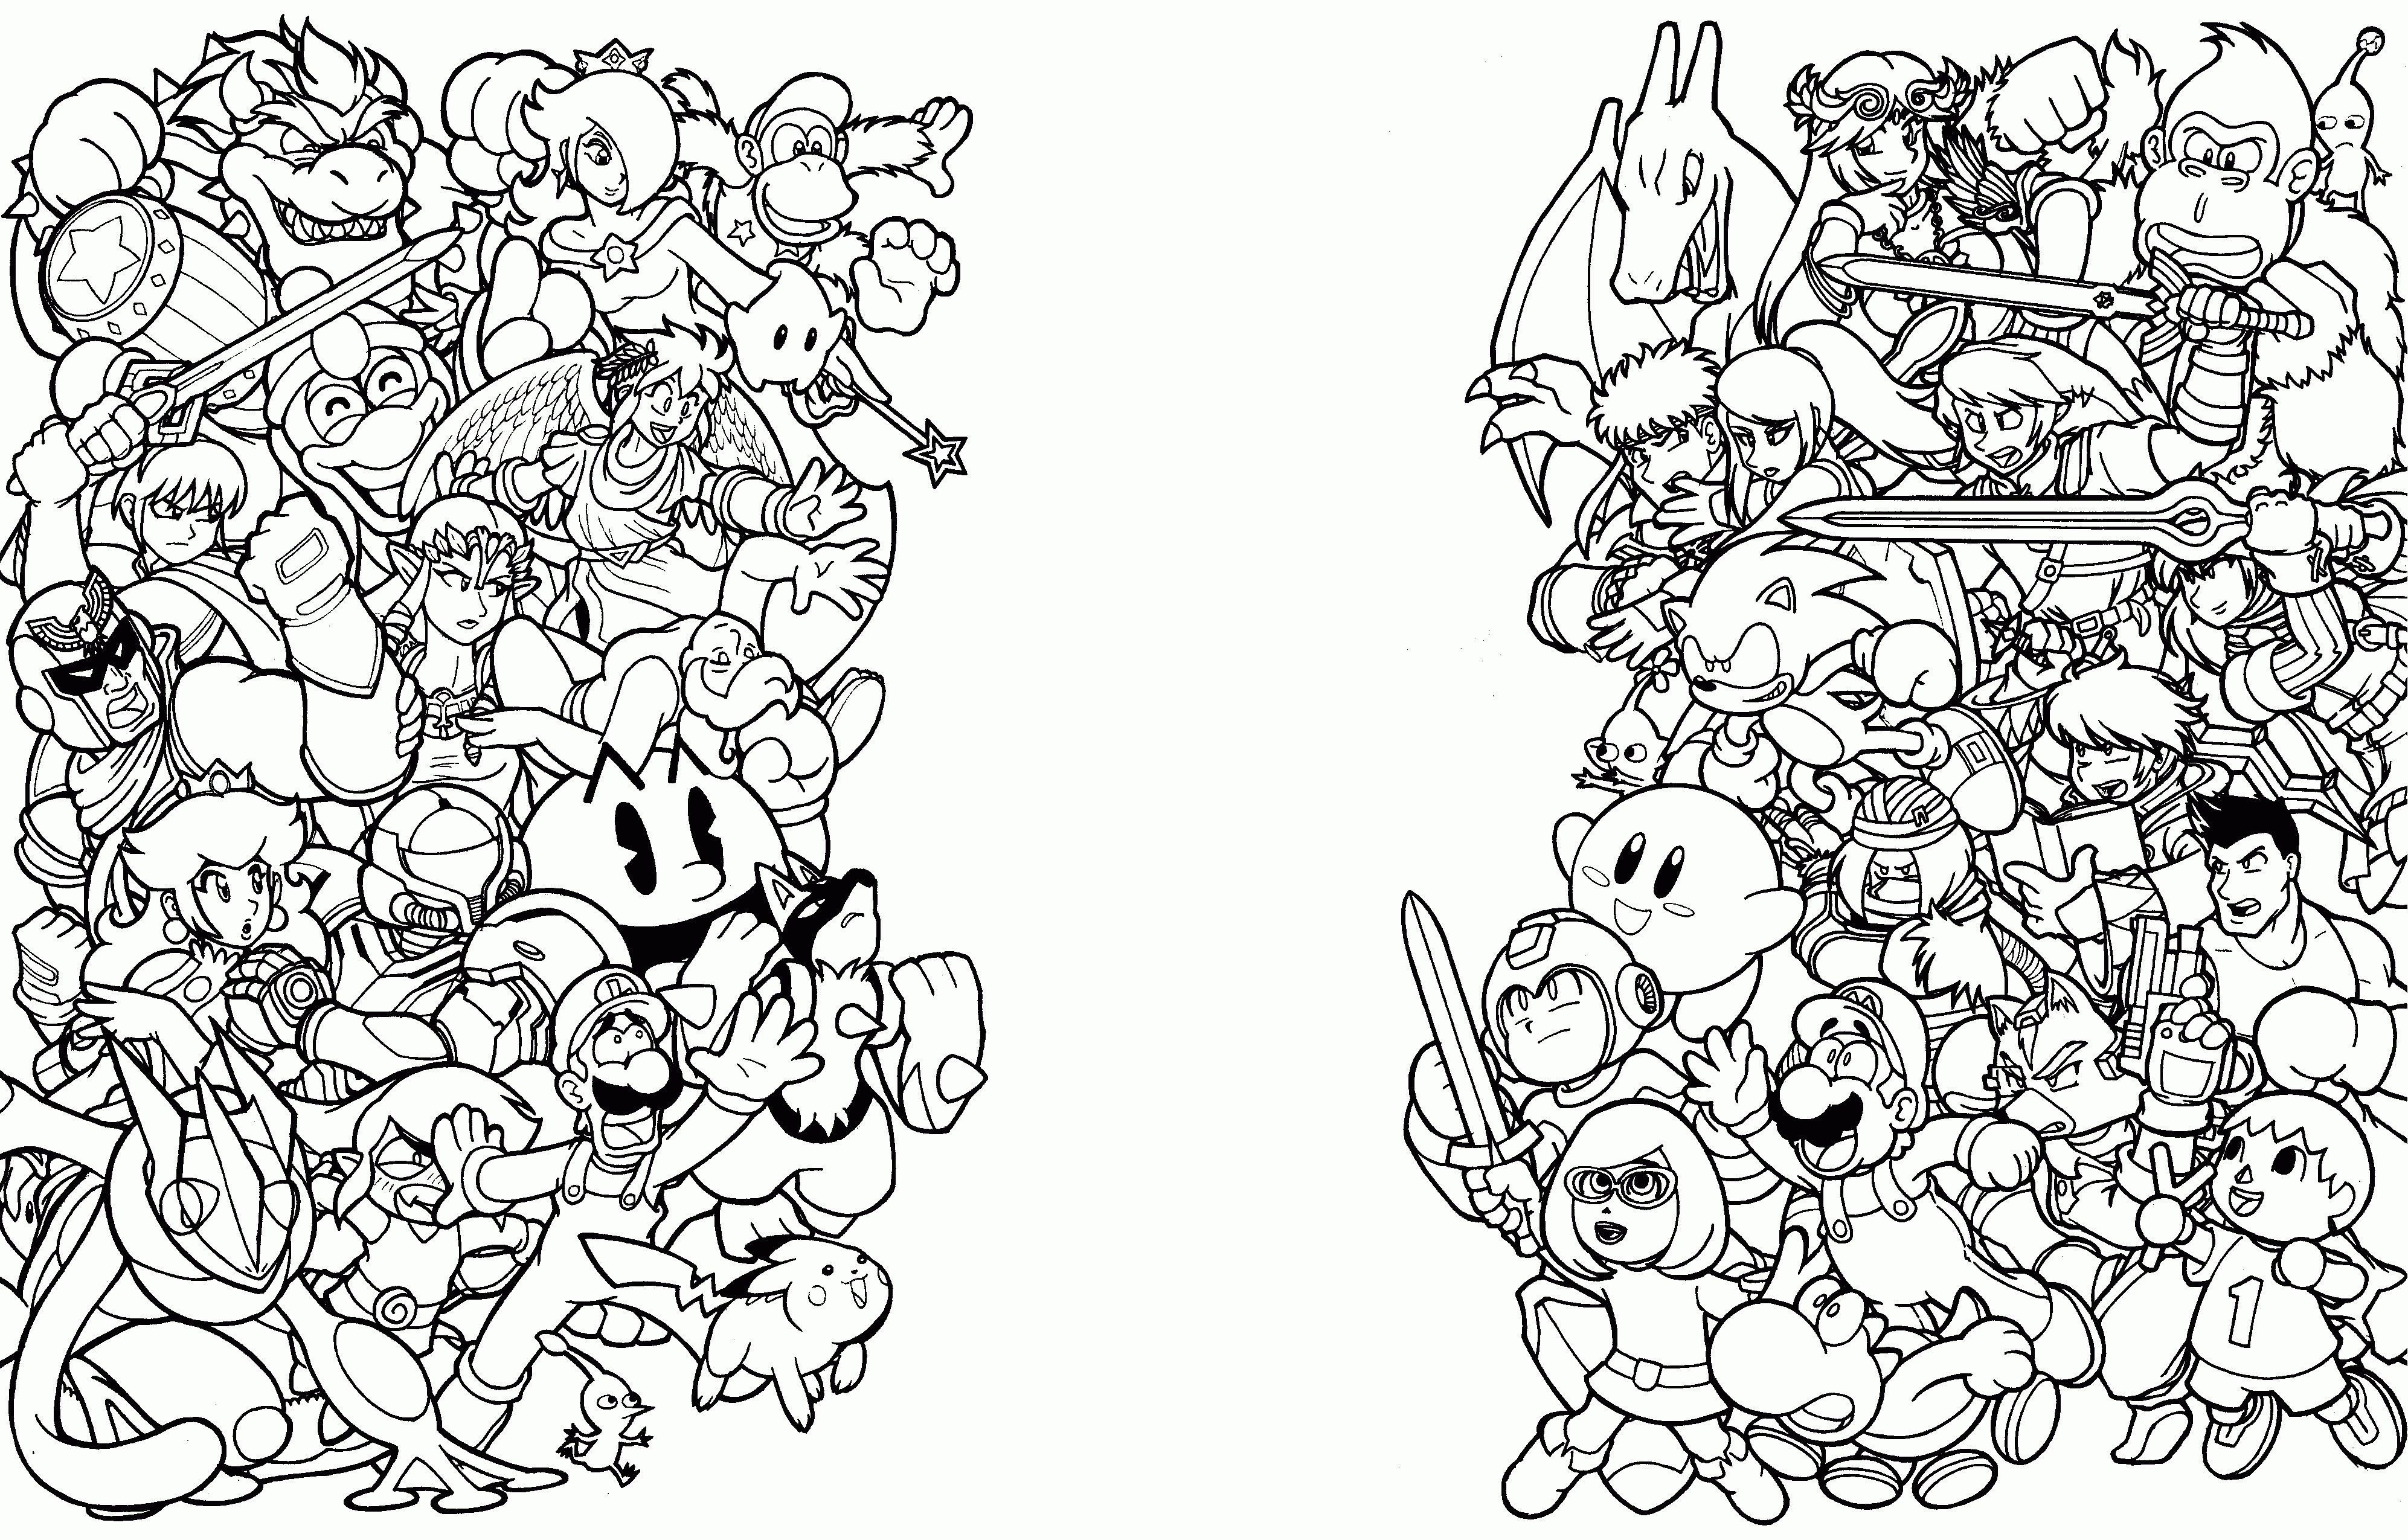 Super Smash Bros Coloring Pages Freecolorngpages Co With